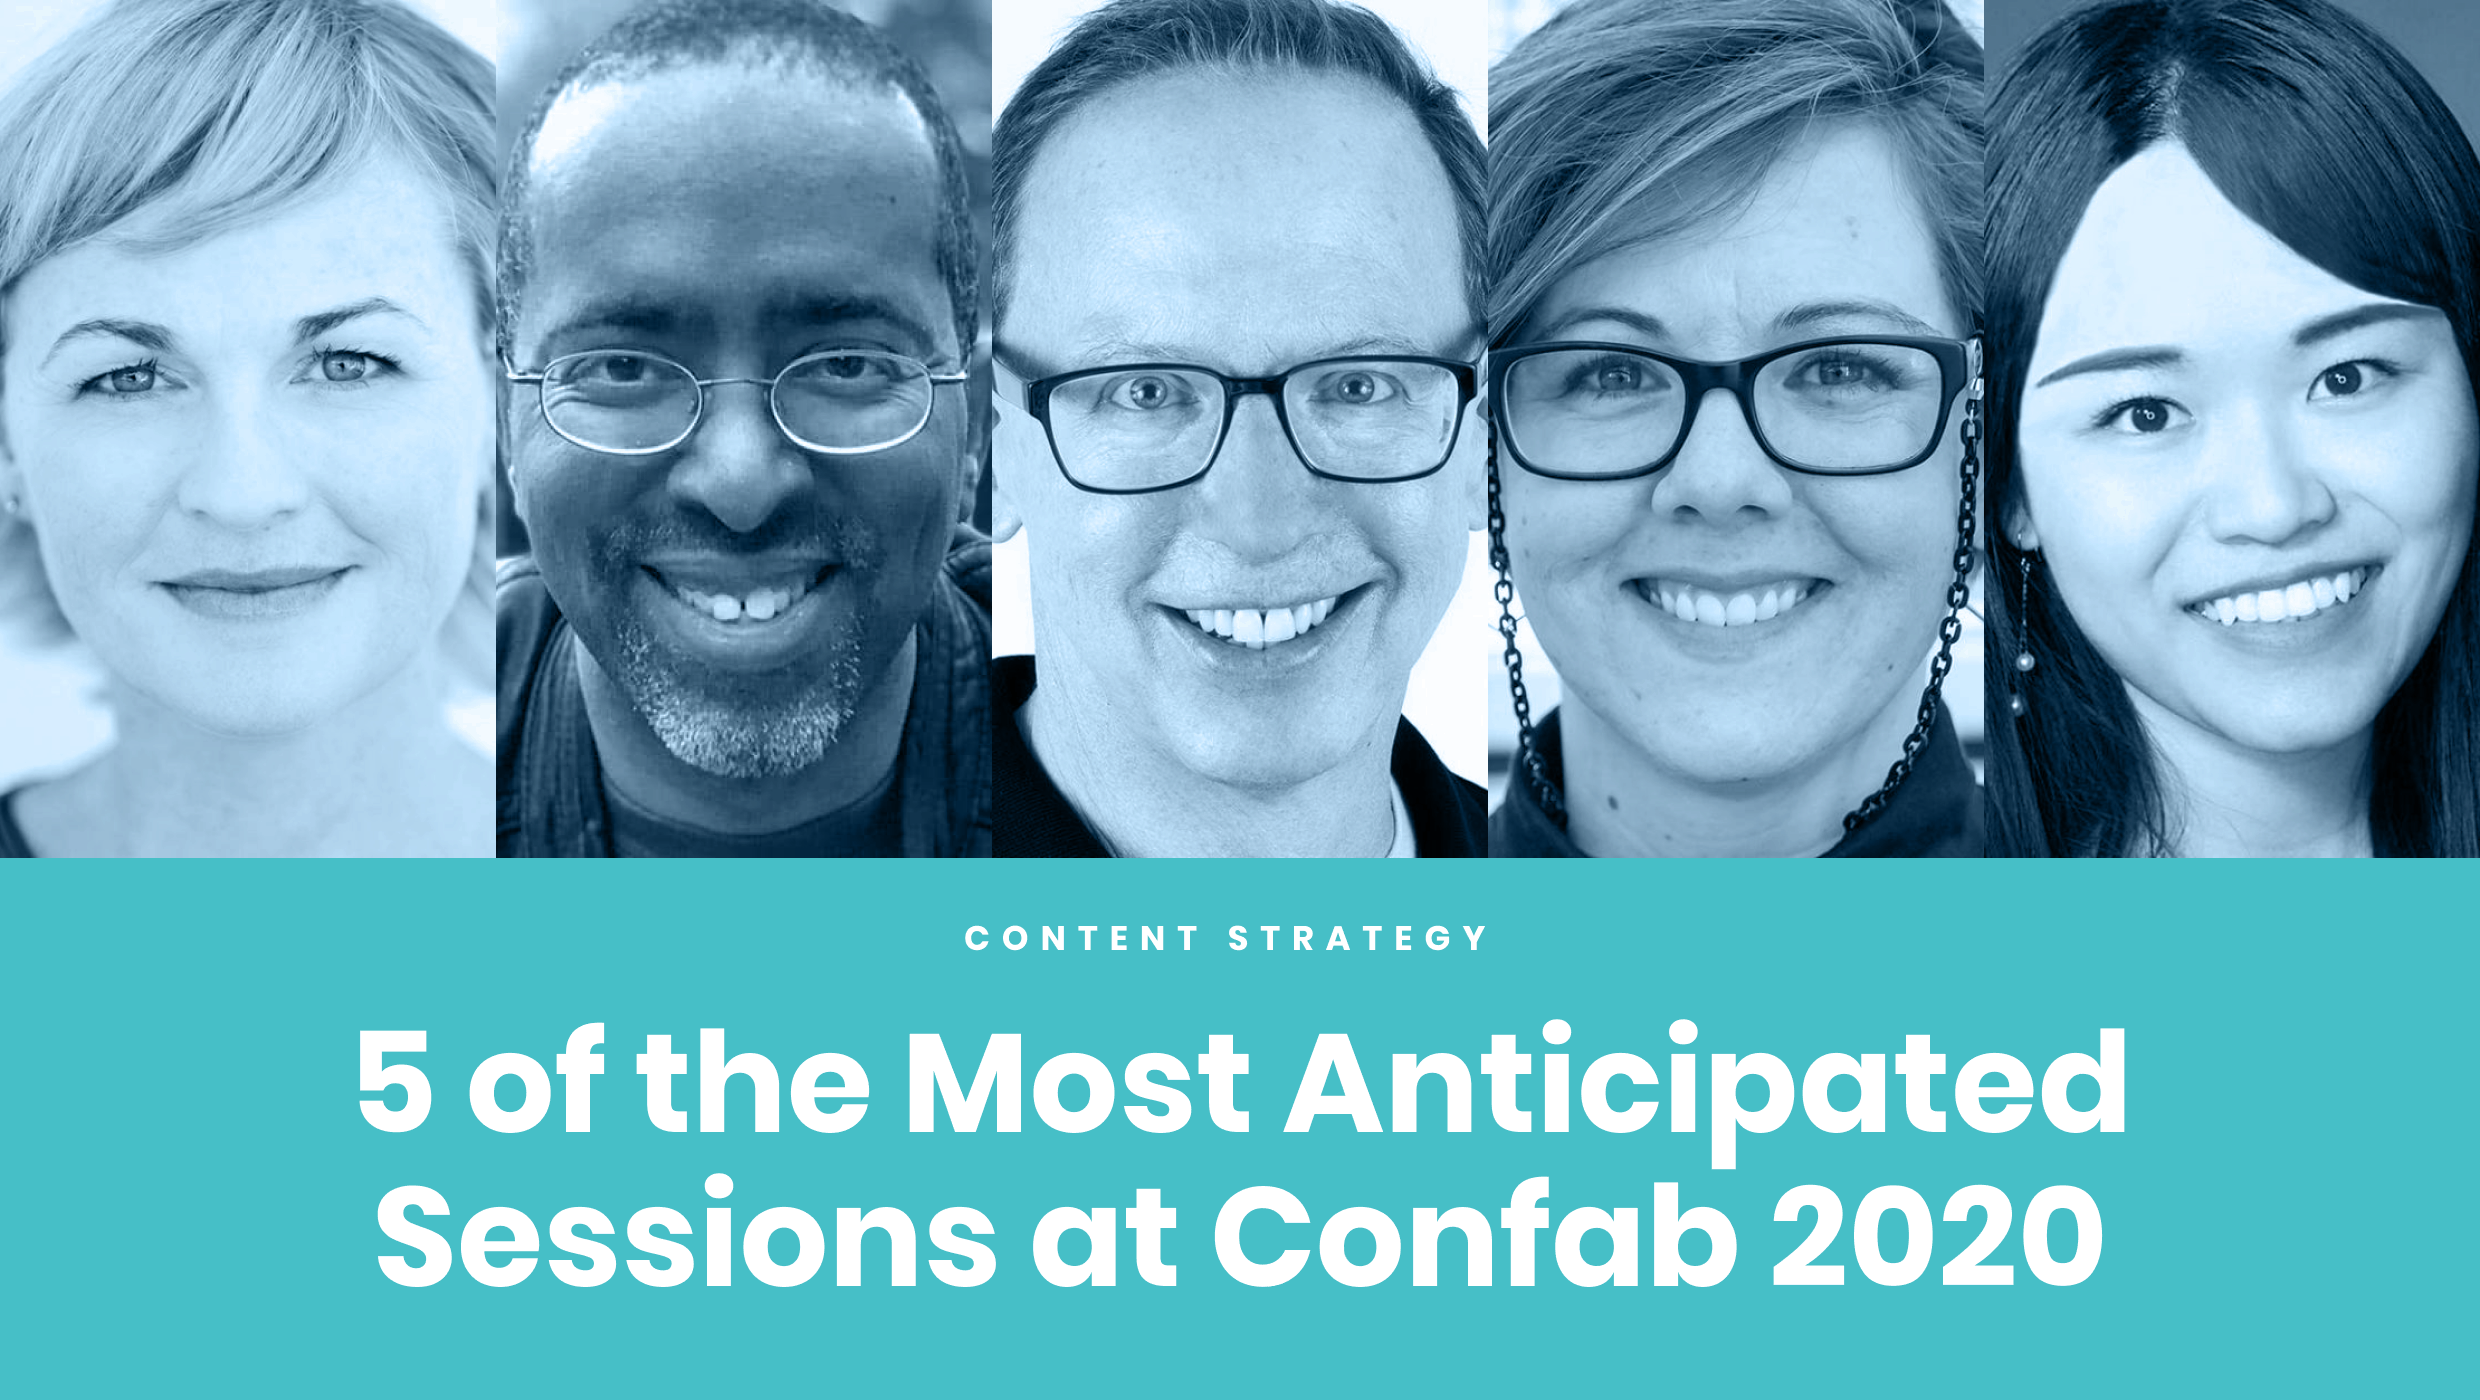 5 of the most anticipated sessions at Confab 2020